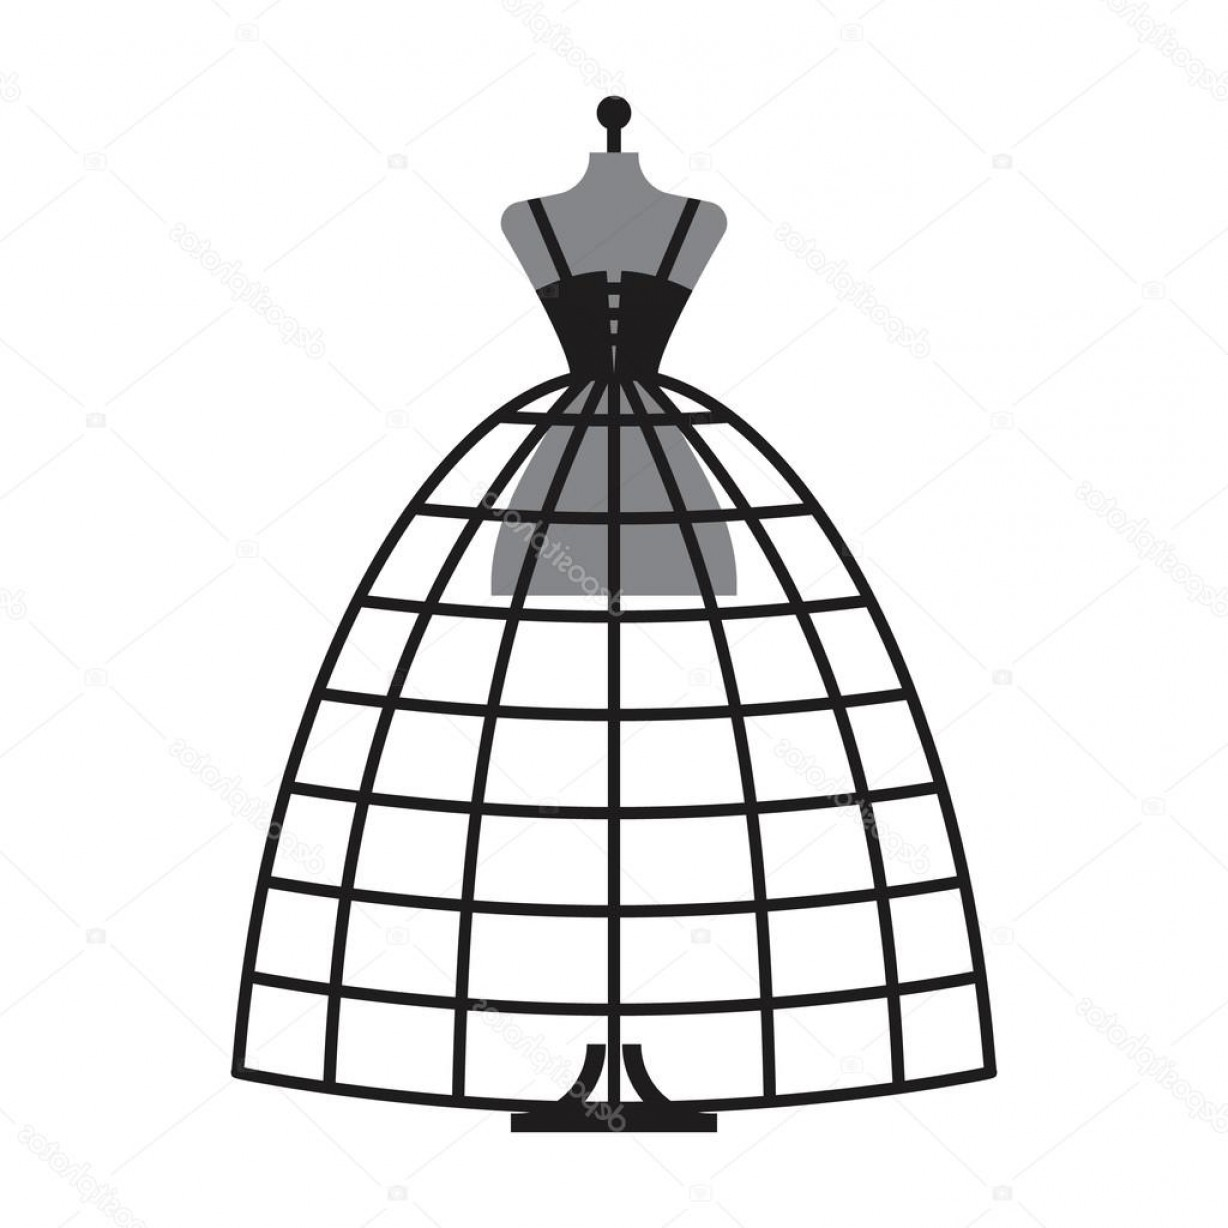 Vector Images Of Black And White Dresses: Stock Illustration Dummy Dress Illustration Vector